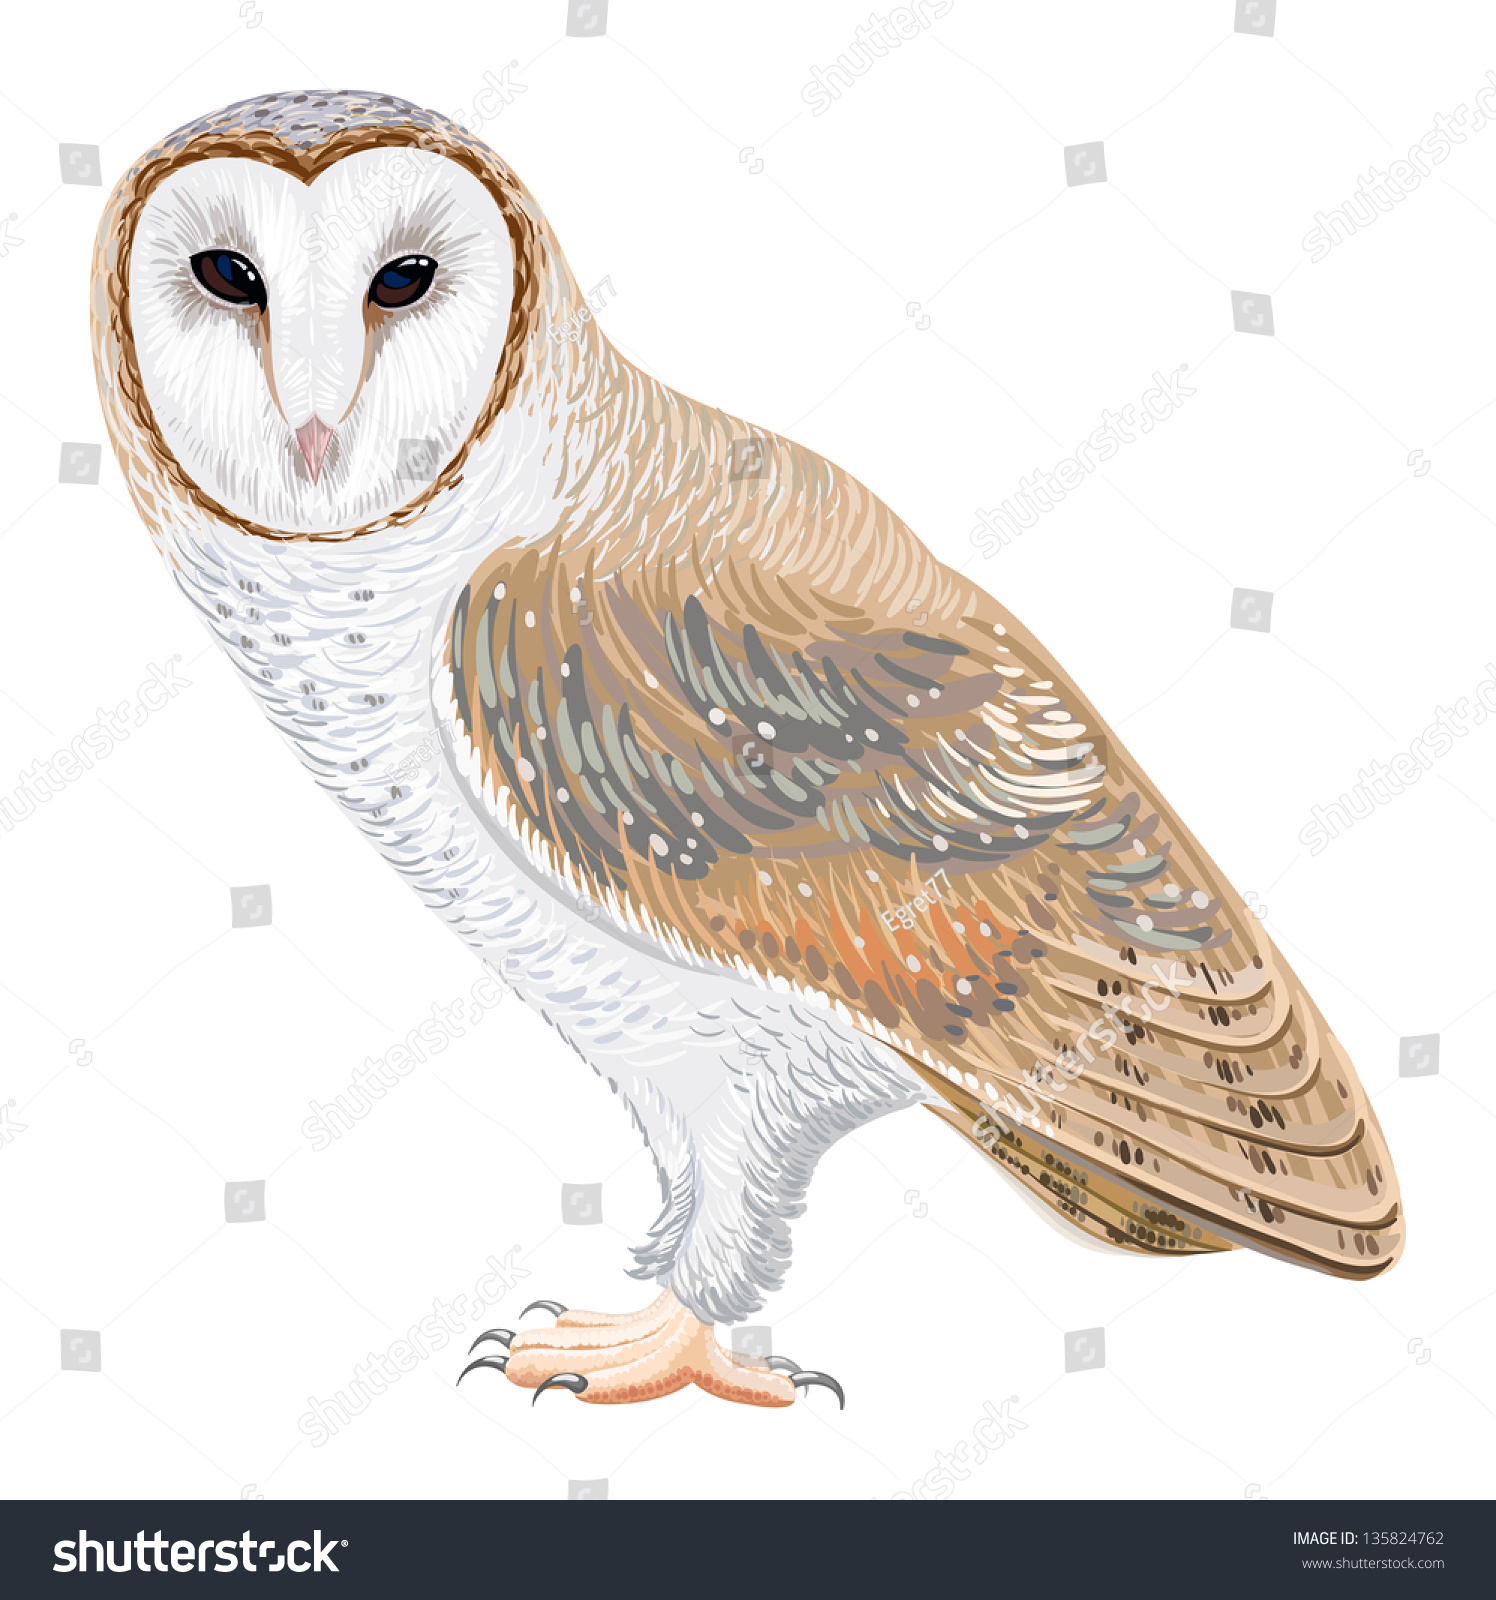 Barn Owl Stock Vector Illustration 135824762 : Shutterstock